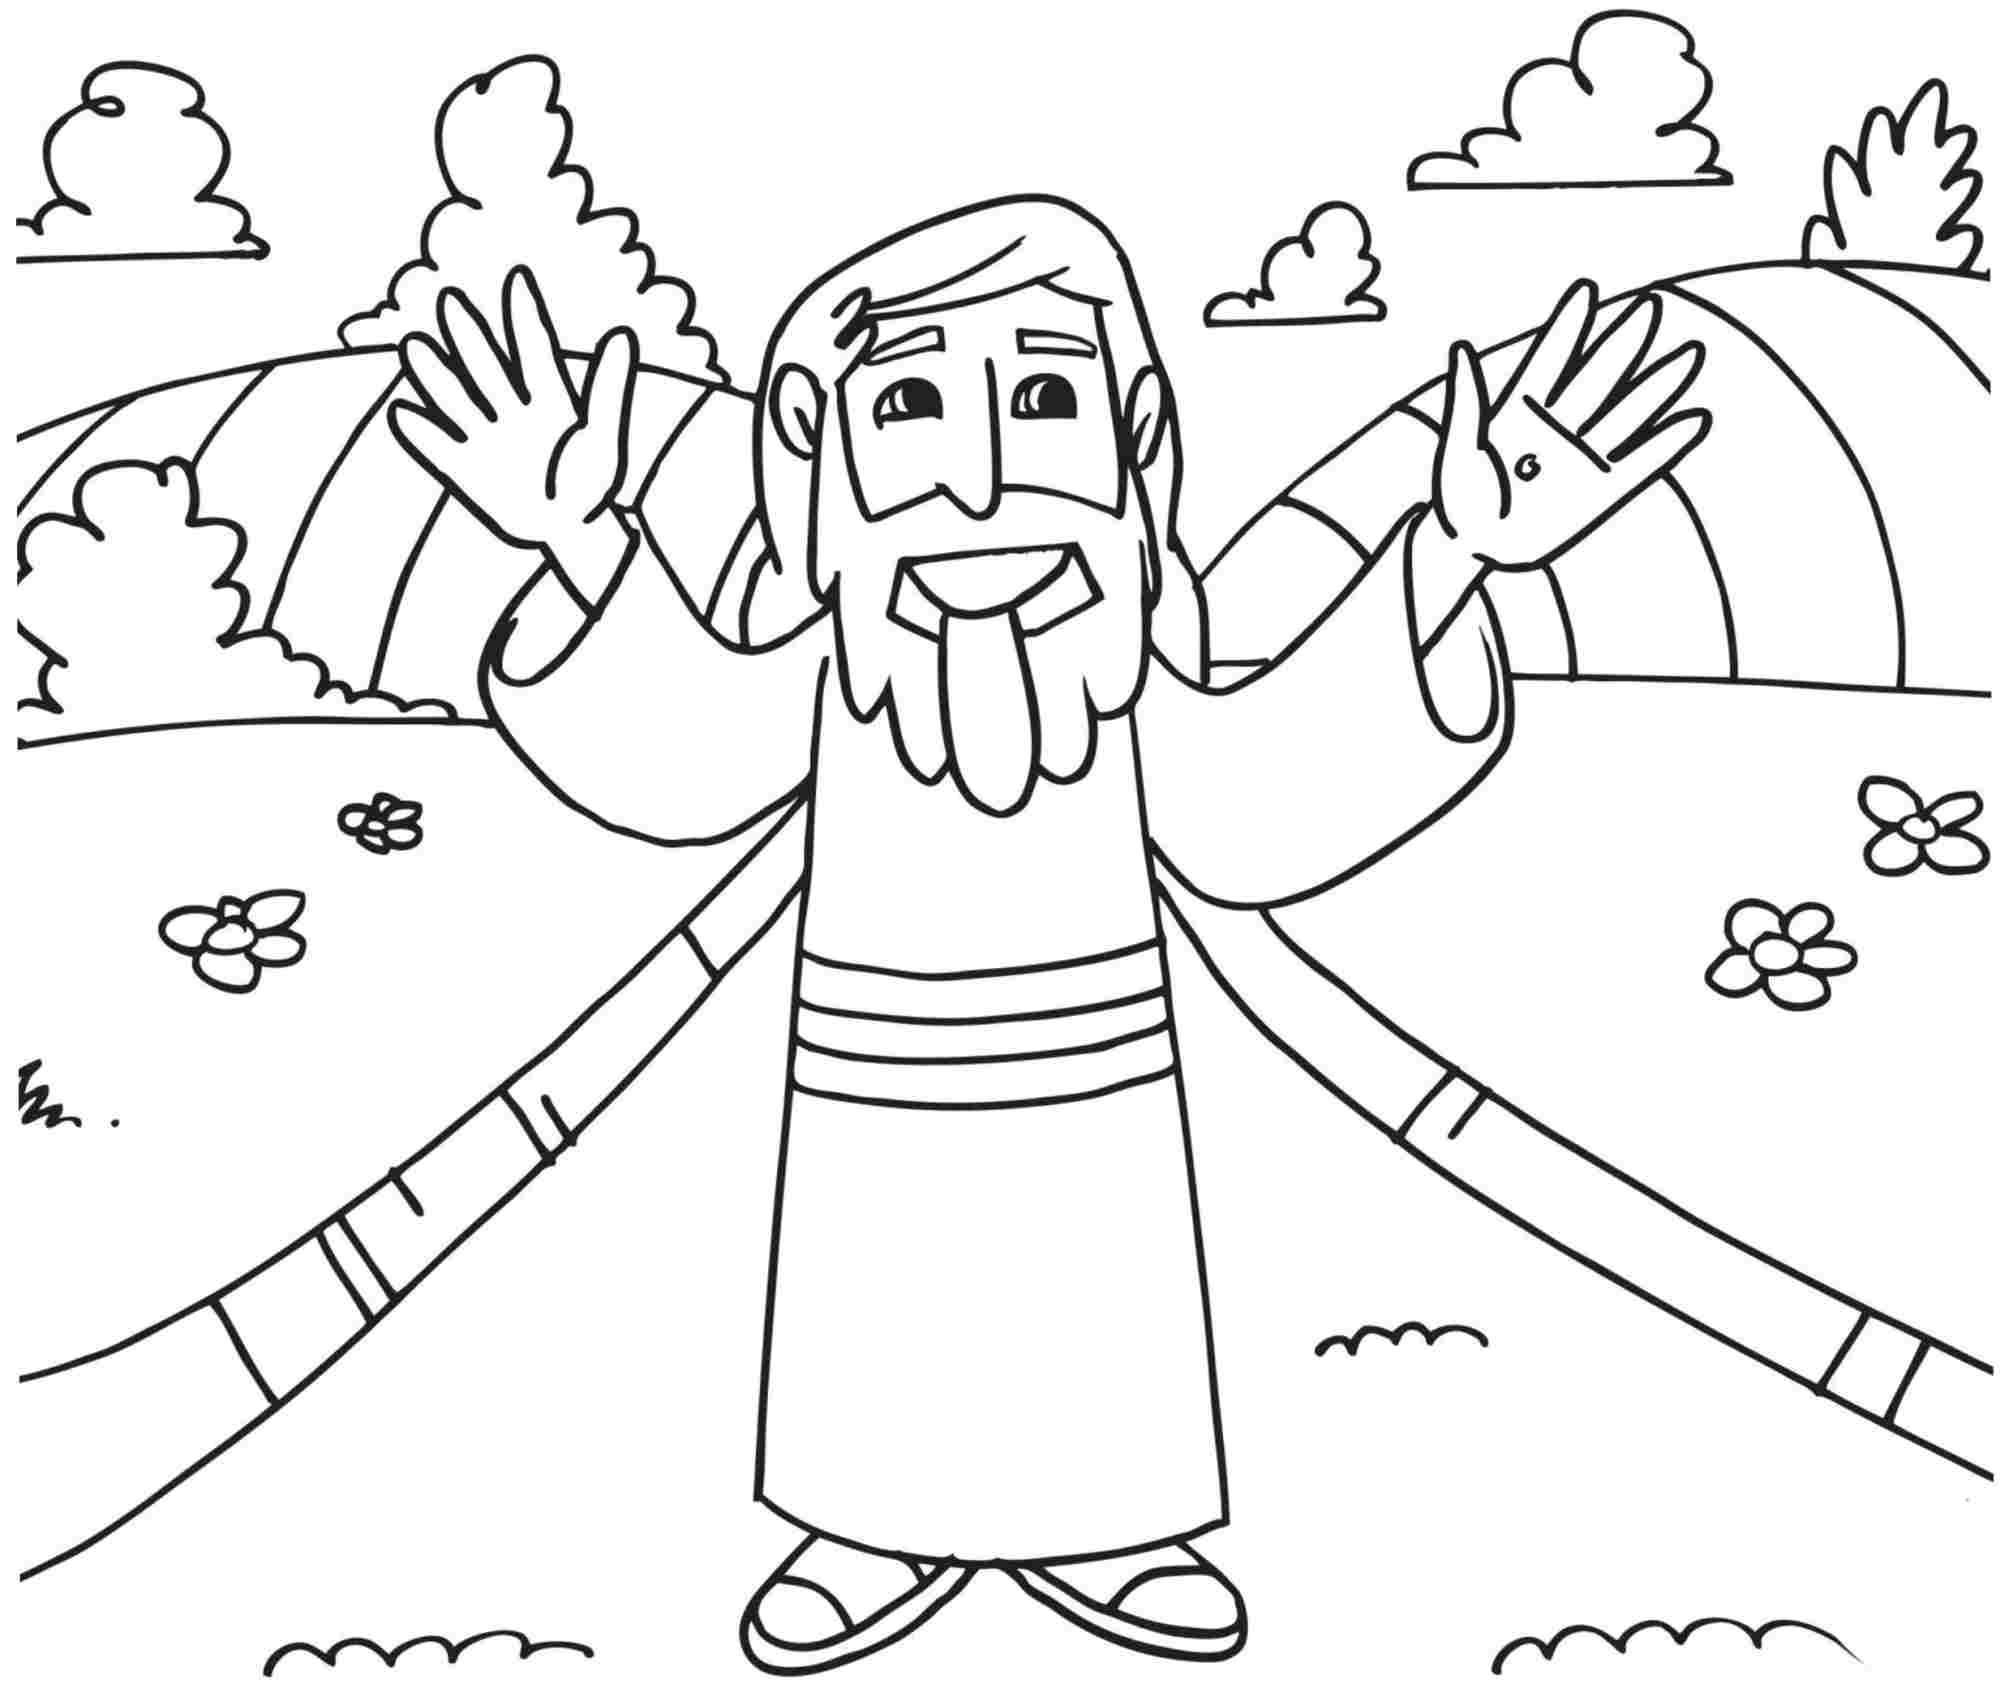 preschool church coloring pages easter bible coloring pages christian preschool printables pages coloring preschool church